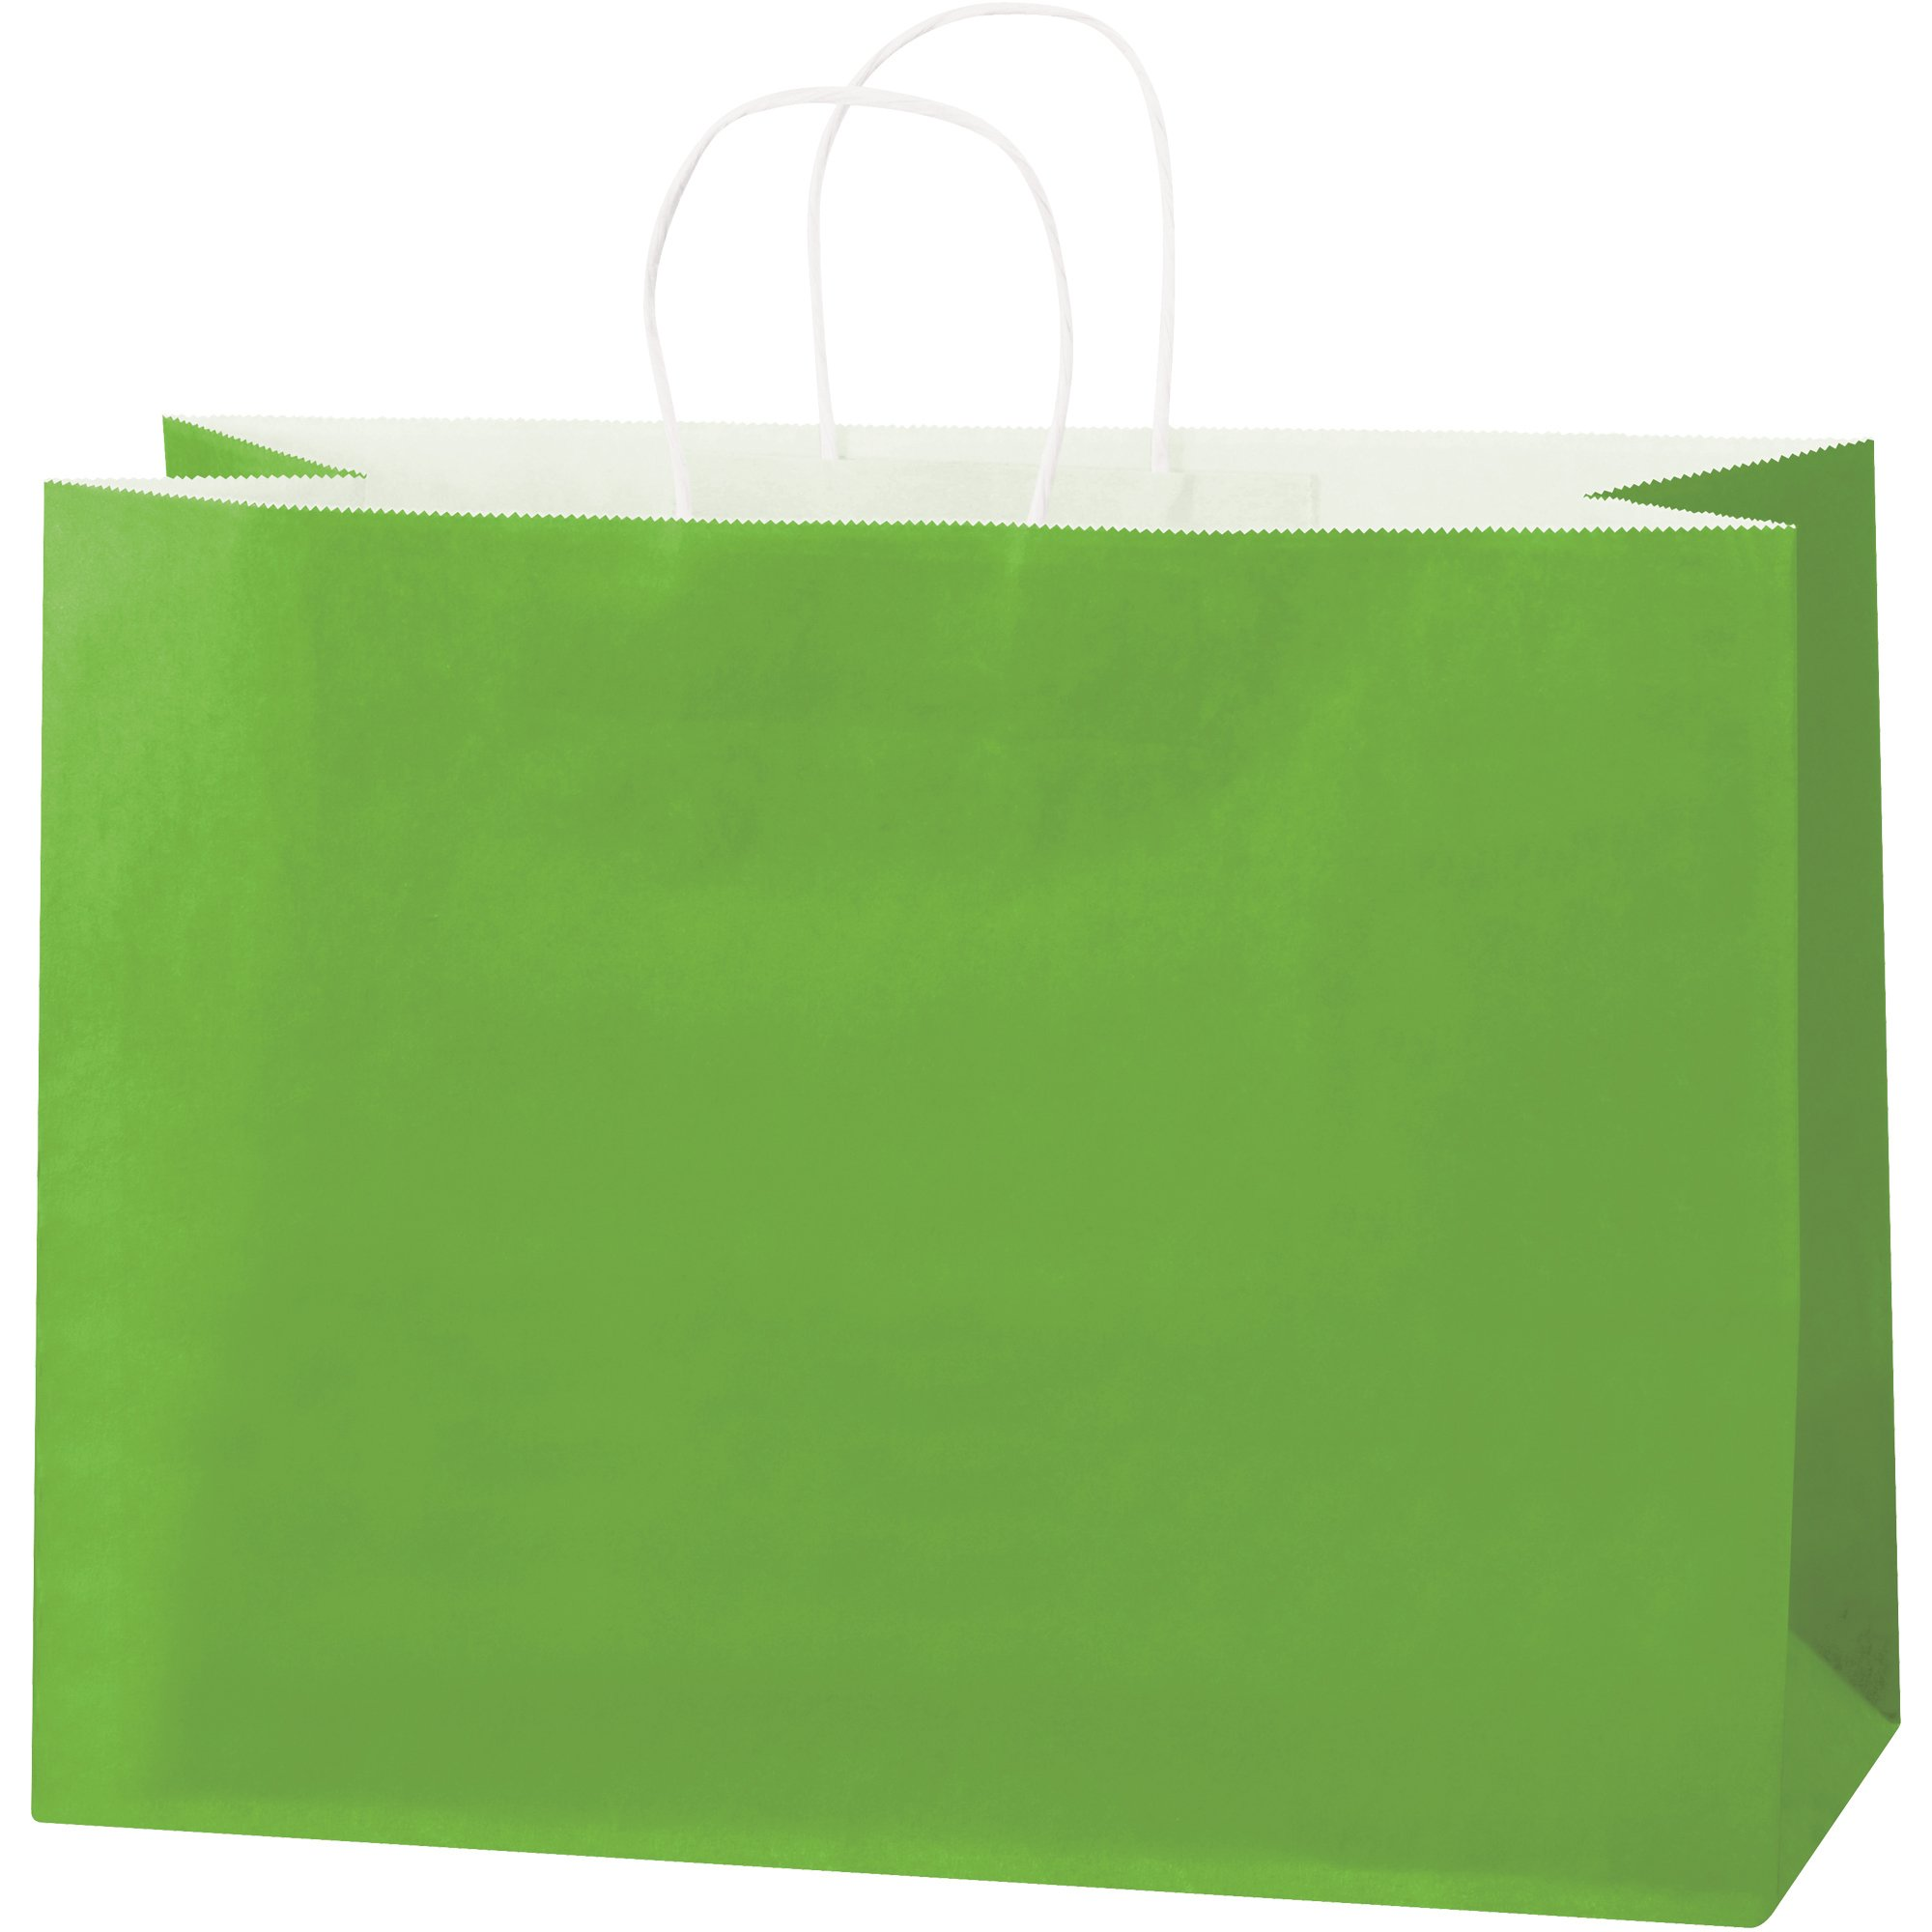 Tinted Paper Shopping Bags, 16'' x 6'' x 12'', Citrus Green, 250/Case